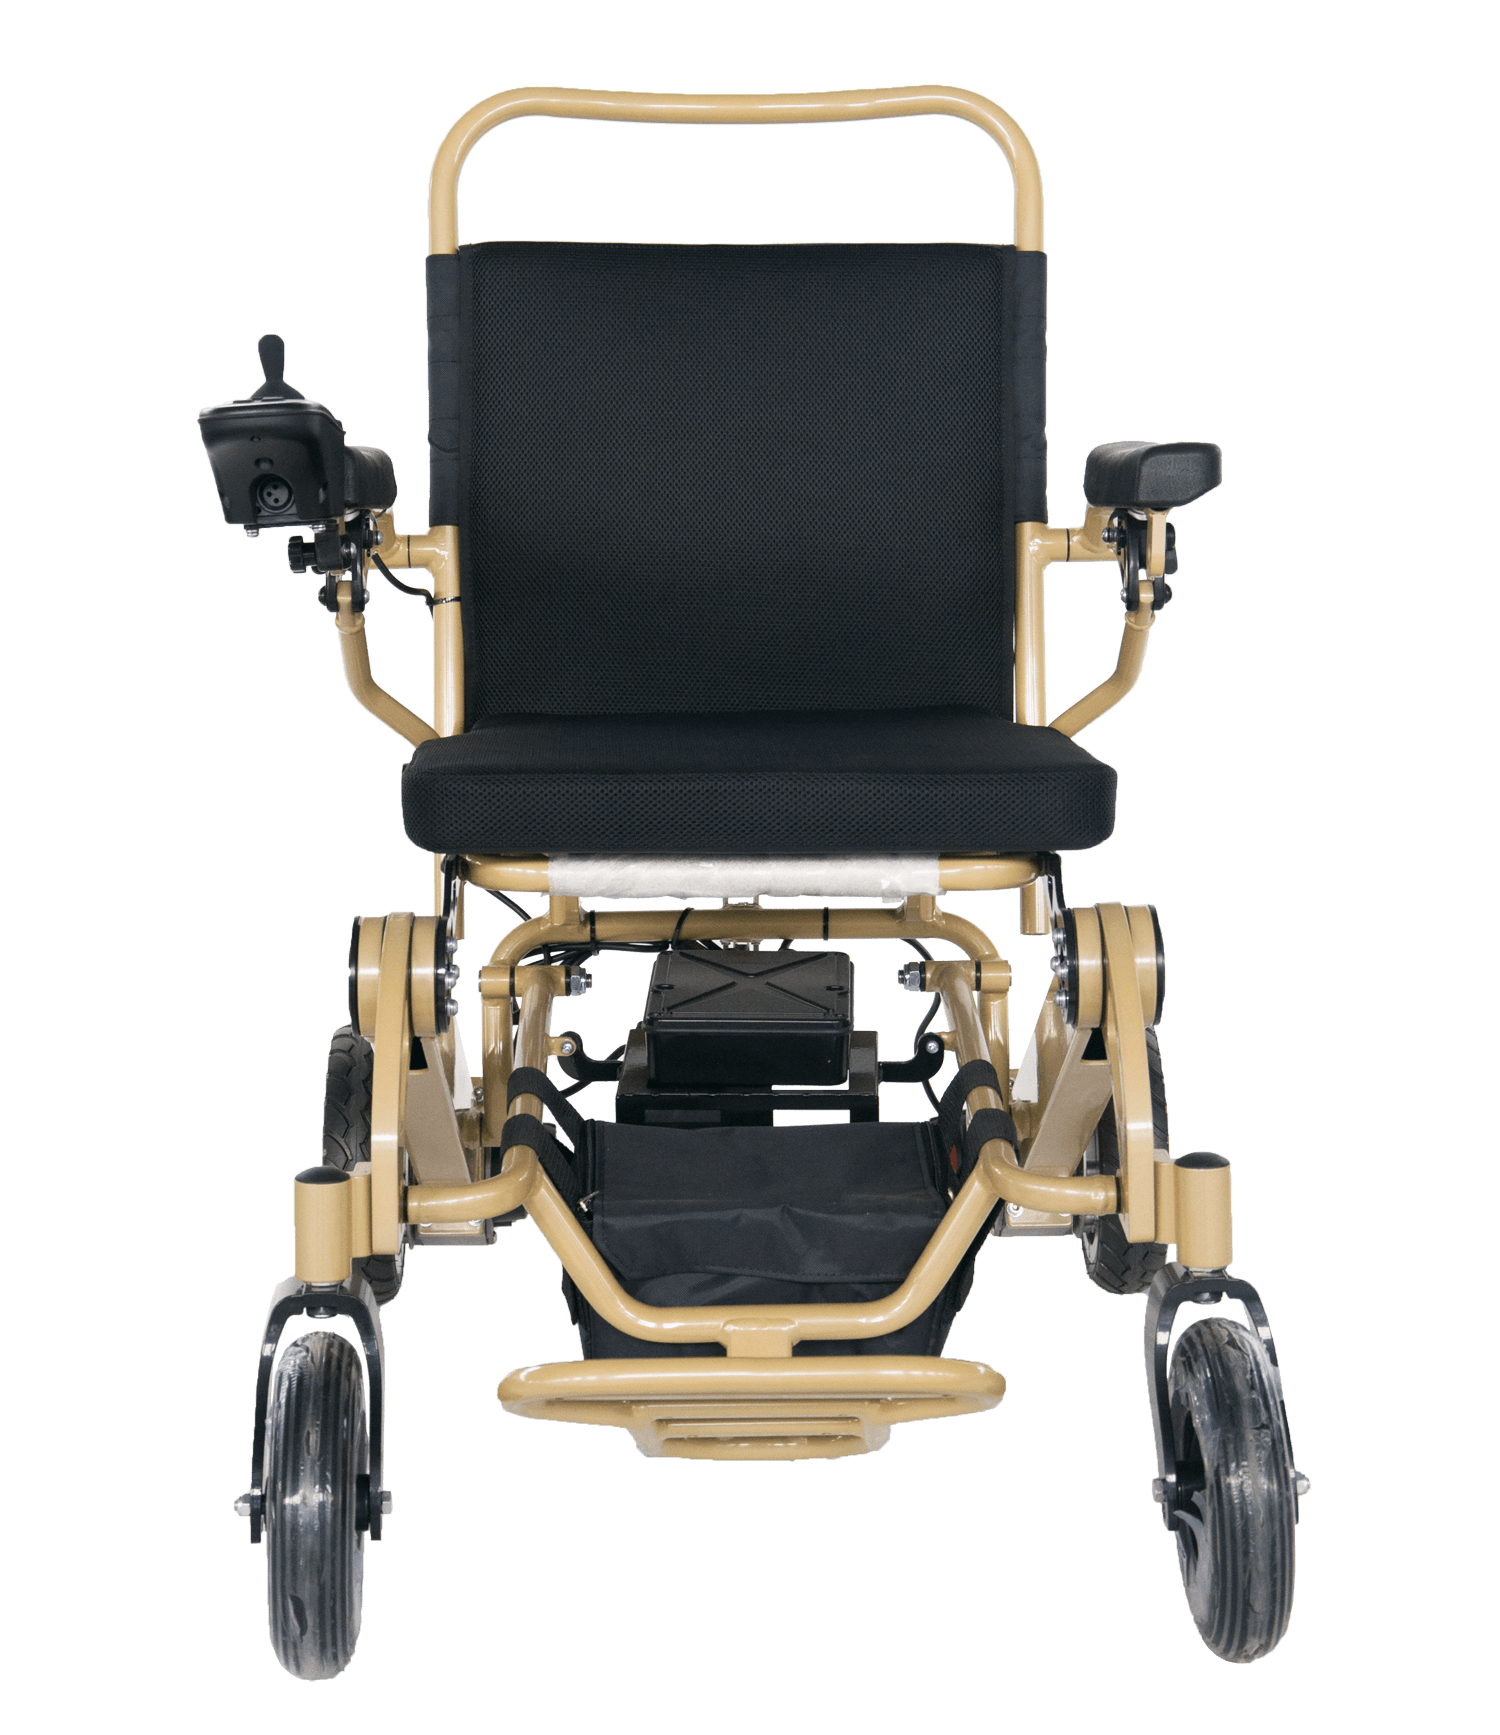 What are the common types of wheelchairs and the differences between them?